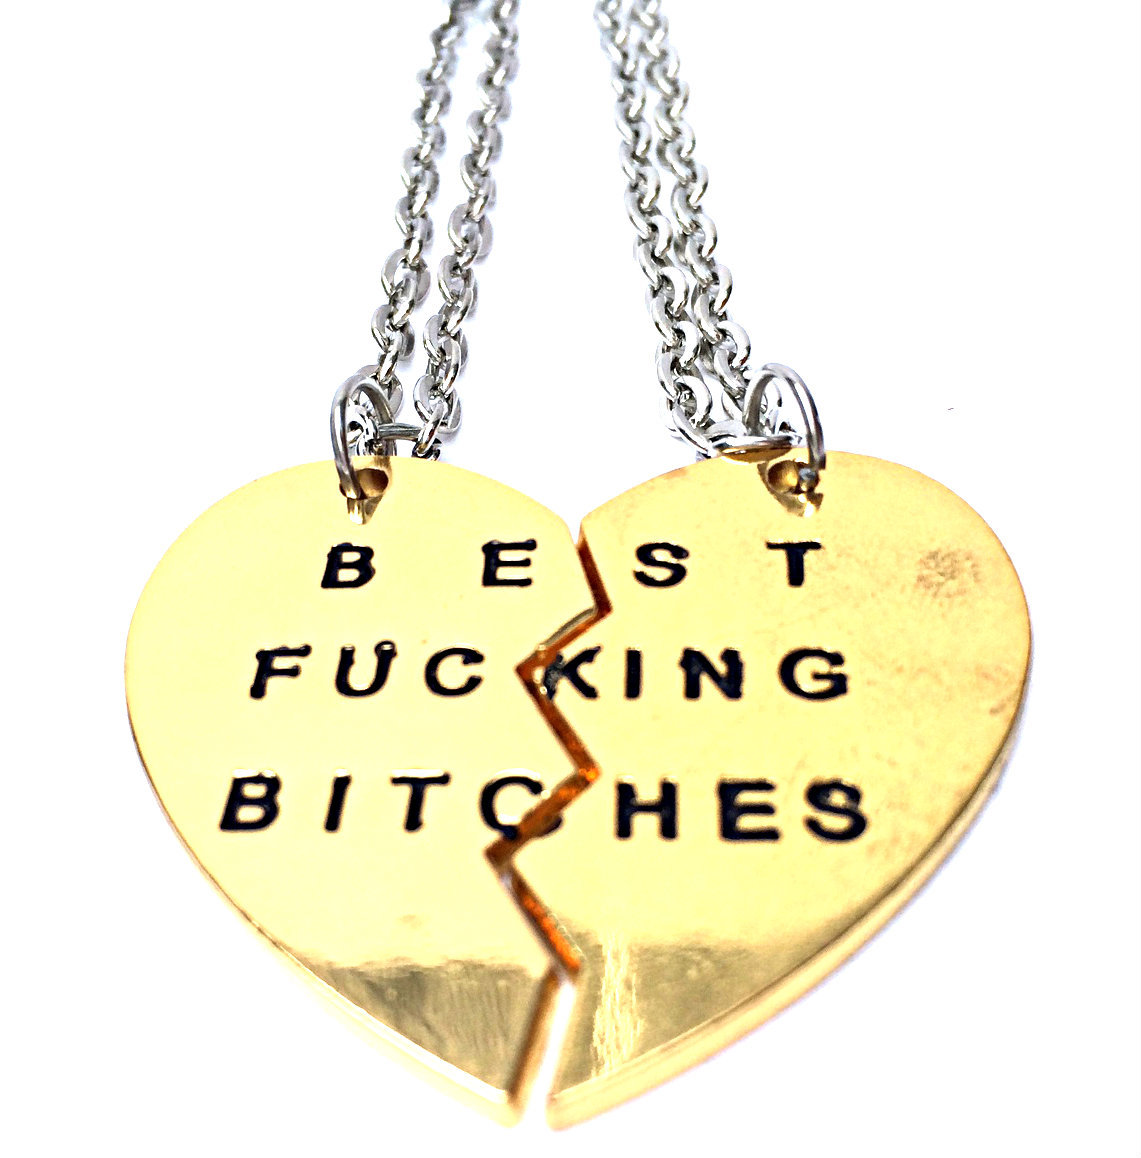 Best fucking bitches necklace